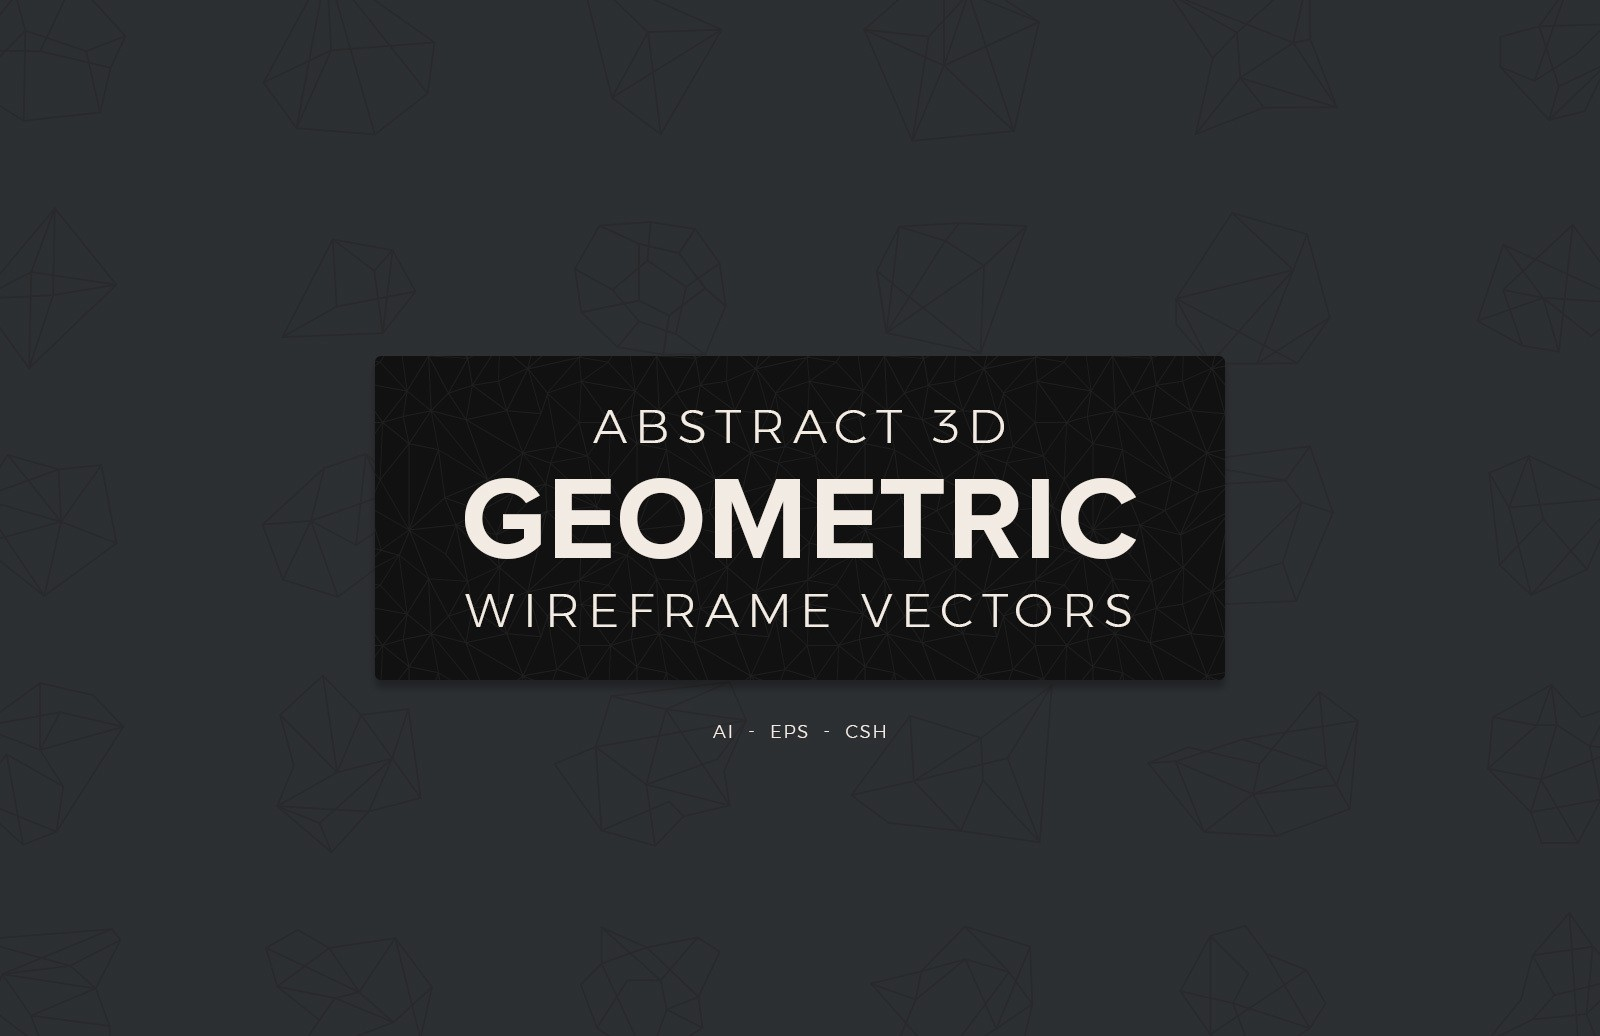 Abstract 3D Geometric Wireframe Vectors